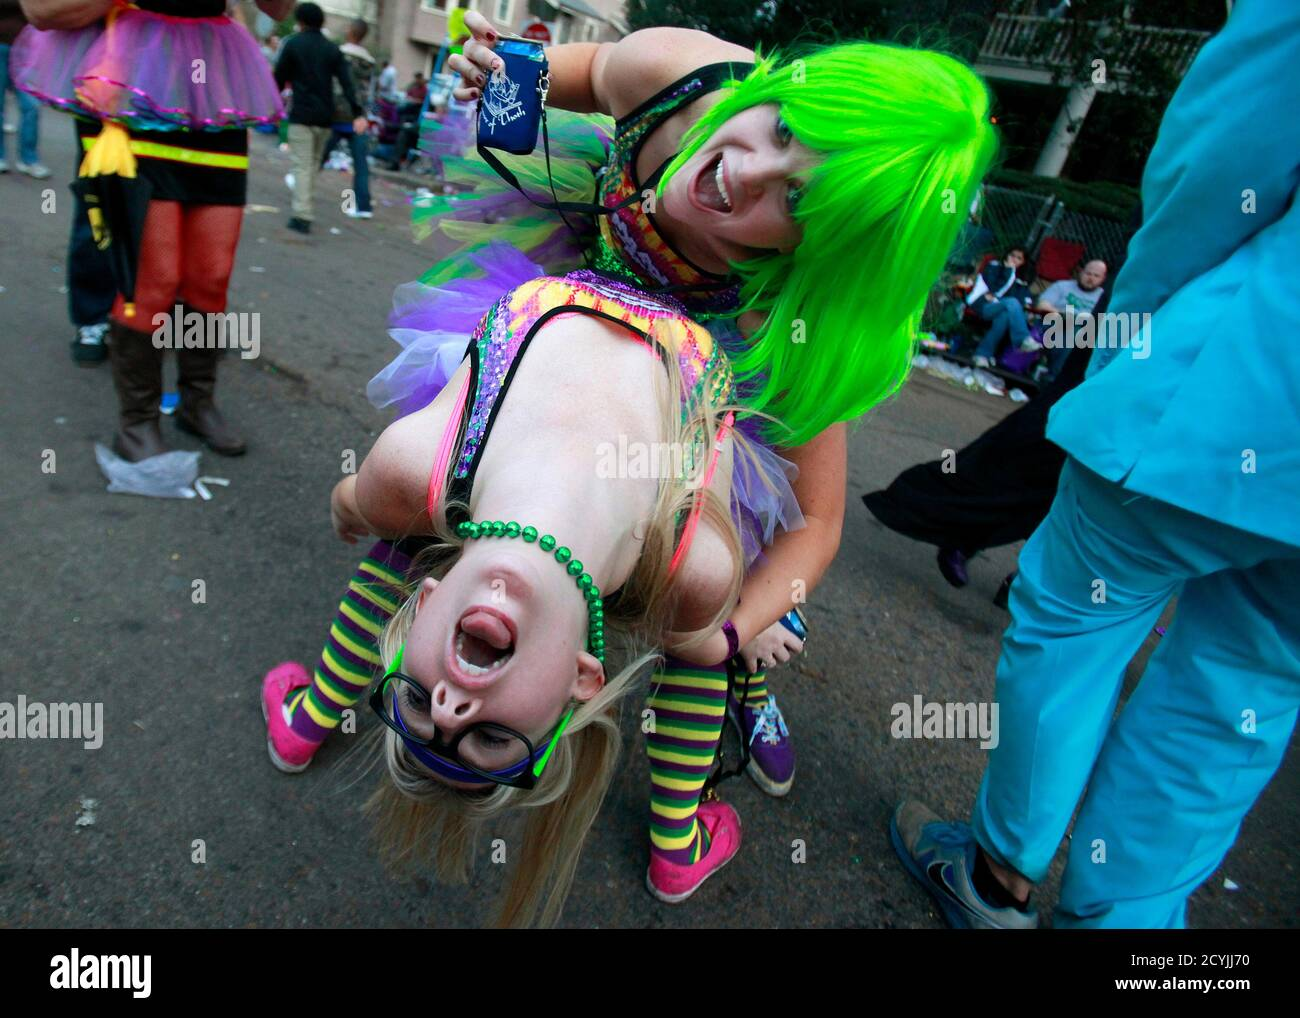 Lauren Whiddon (bottom) and Mari Wisdom dance on St. Charles Avenue as they wait for the Krewe of Bacchus parade in New Orleans, Louisiana February 10, 2013. Mardi Gras day will be celebrated on February 12, 2013. REUTERS/Sean Gardner (UNITED STATES - Tags: SOCIETY) Stock Photo